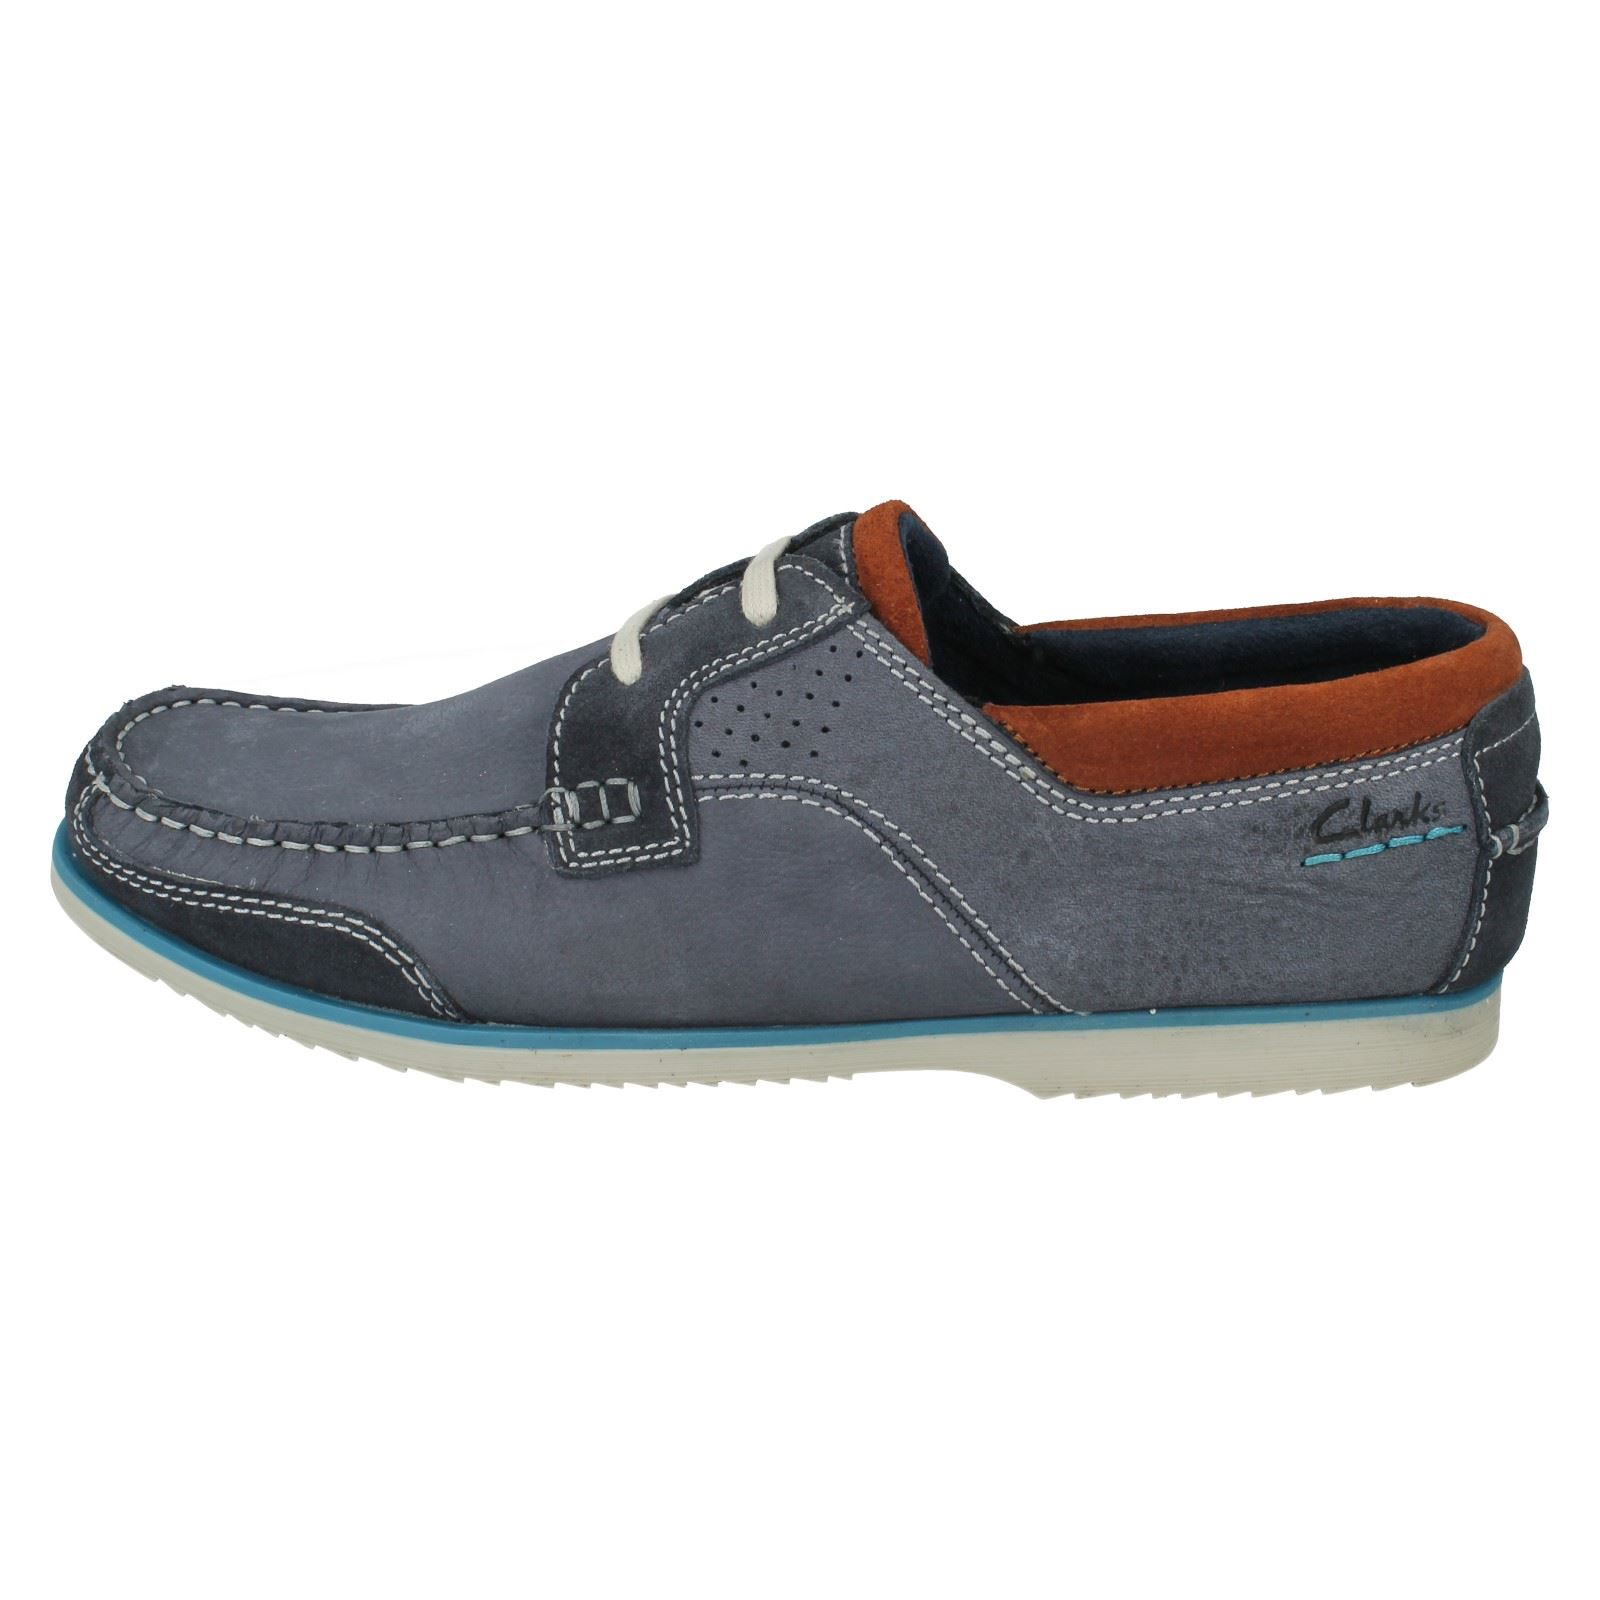 Looking for the best boat shoes to wear for summer ? Check out these boat shoes for men, including styles of Sperry boat shoes, as well as picks from TOMS, Allbirds, and Converse.